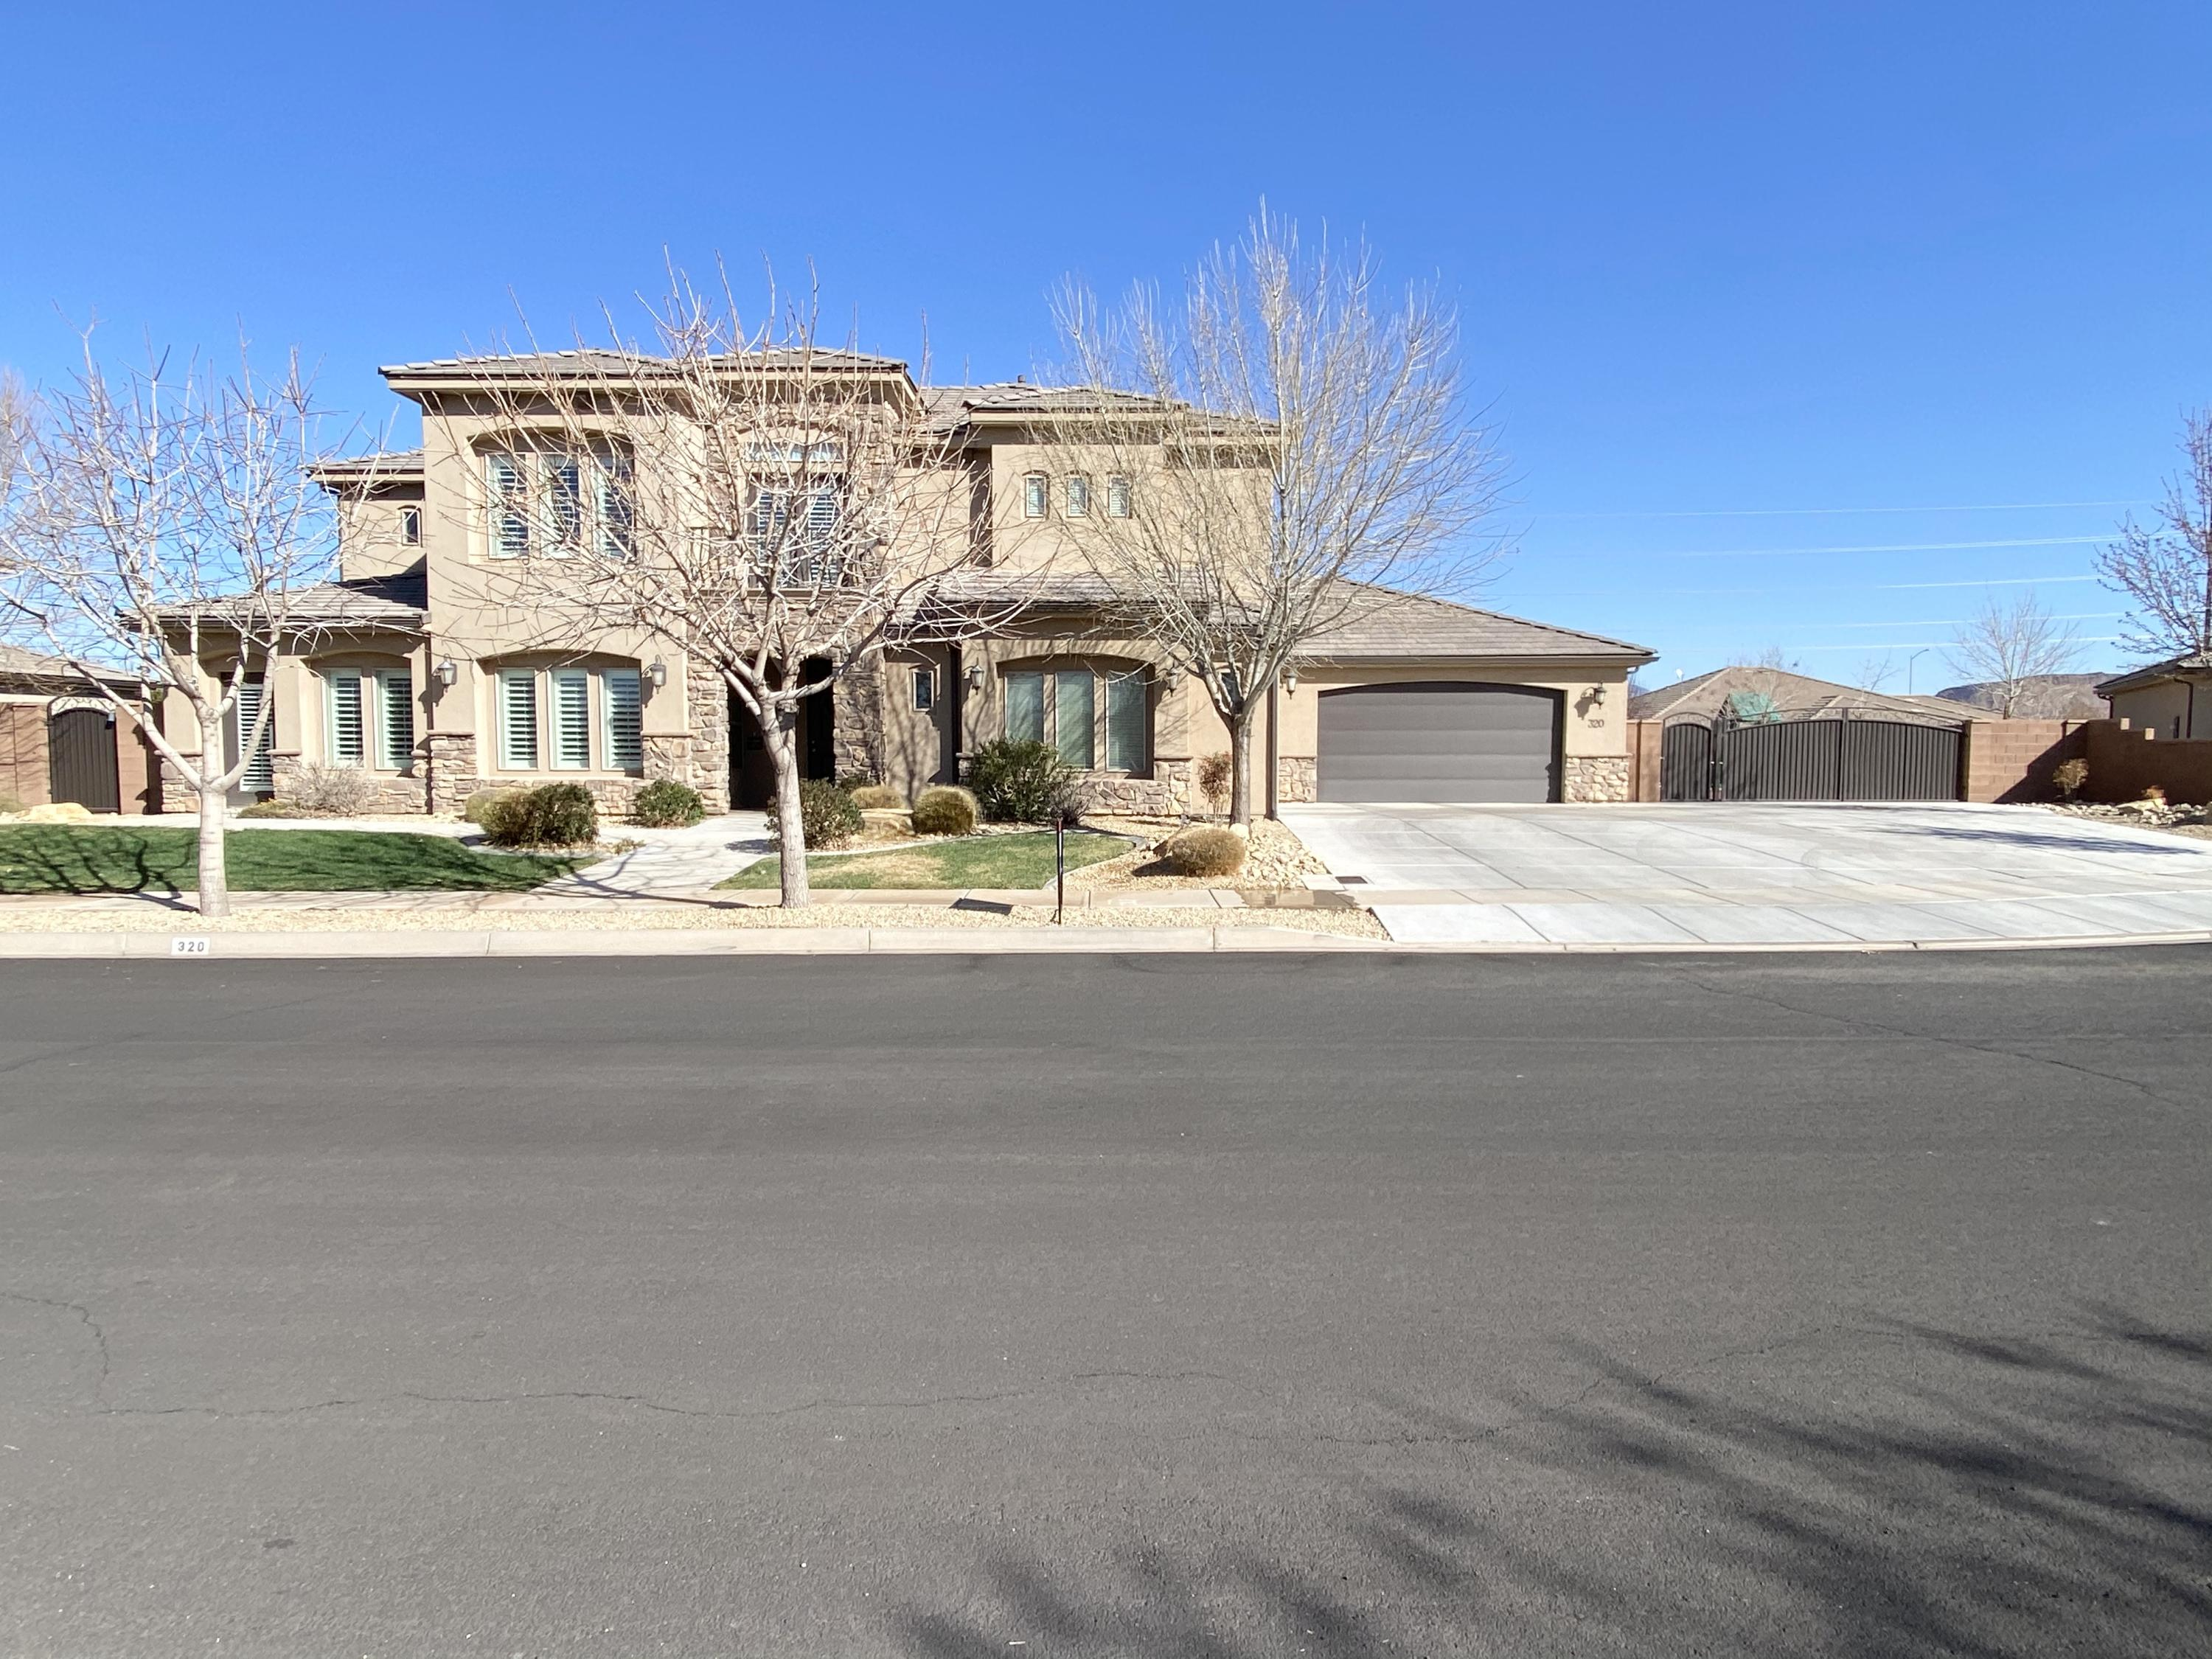 320 W 3162 S, Washington Ut 84780